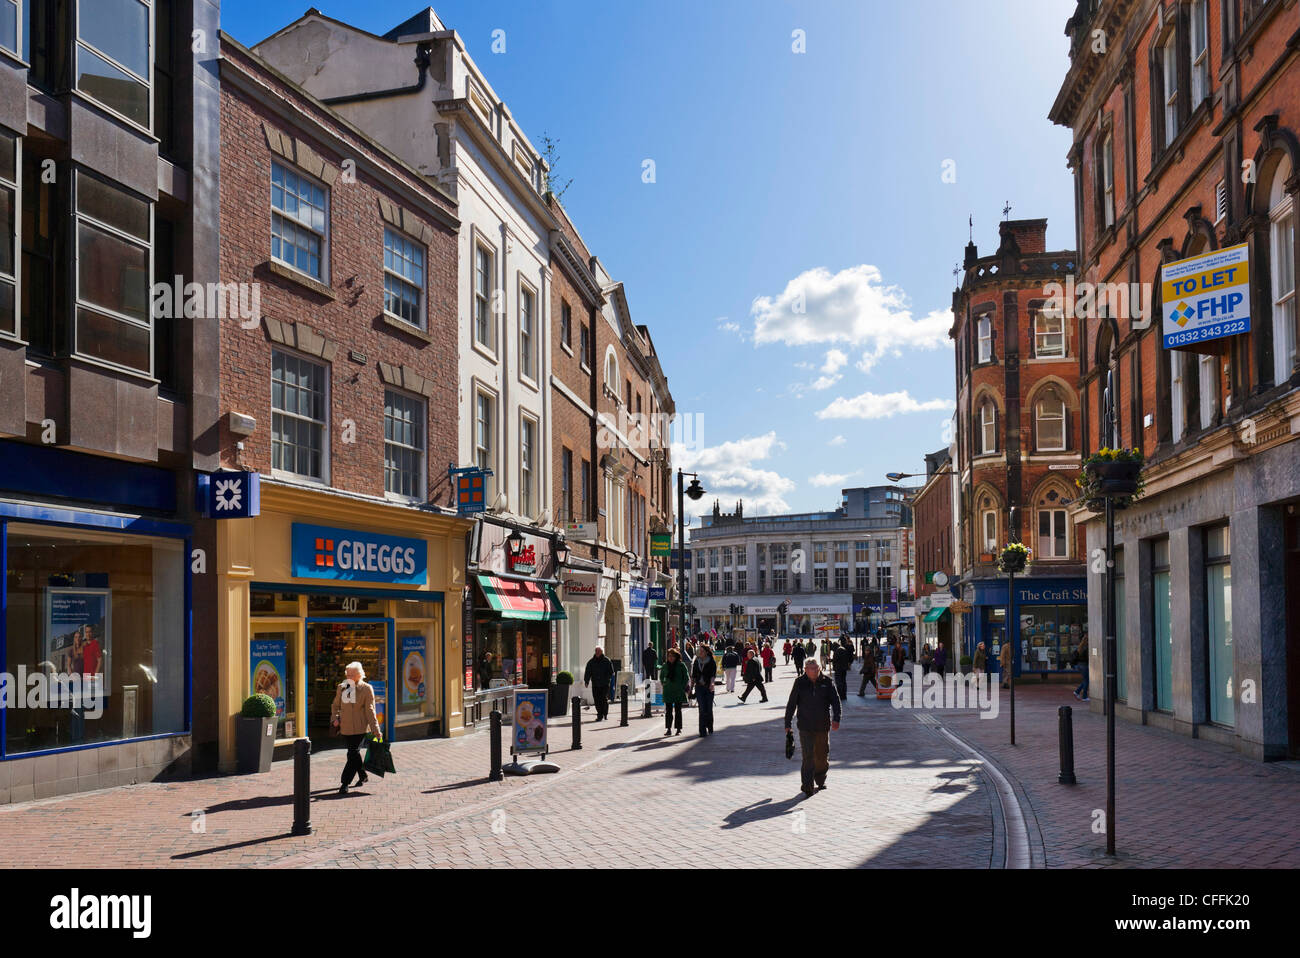 Shops on Cornmarket in the city centre, Derby, Derbyshire, East Midlands, England, UK - Stock Image